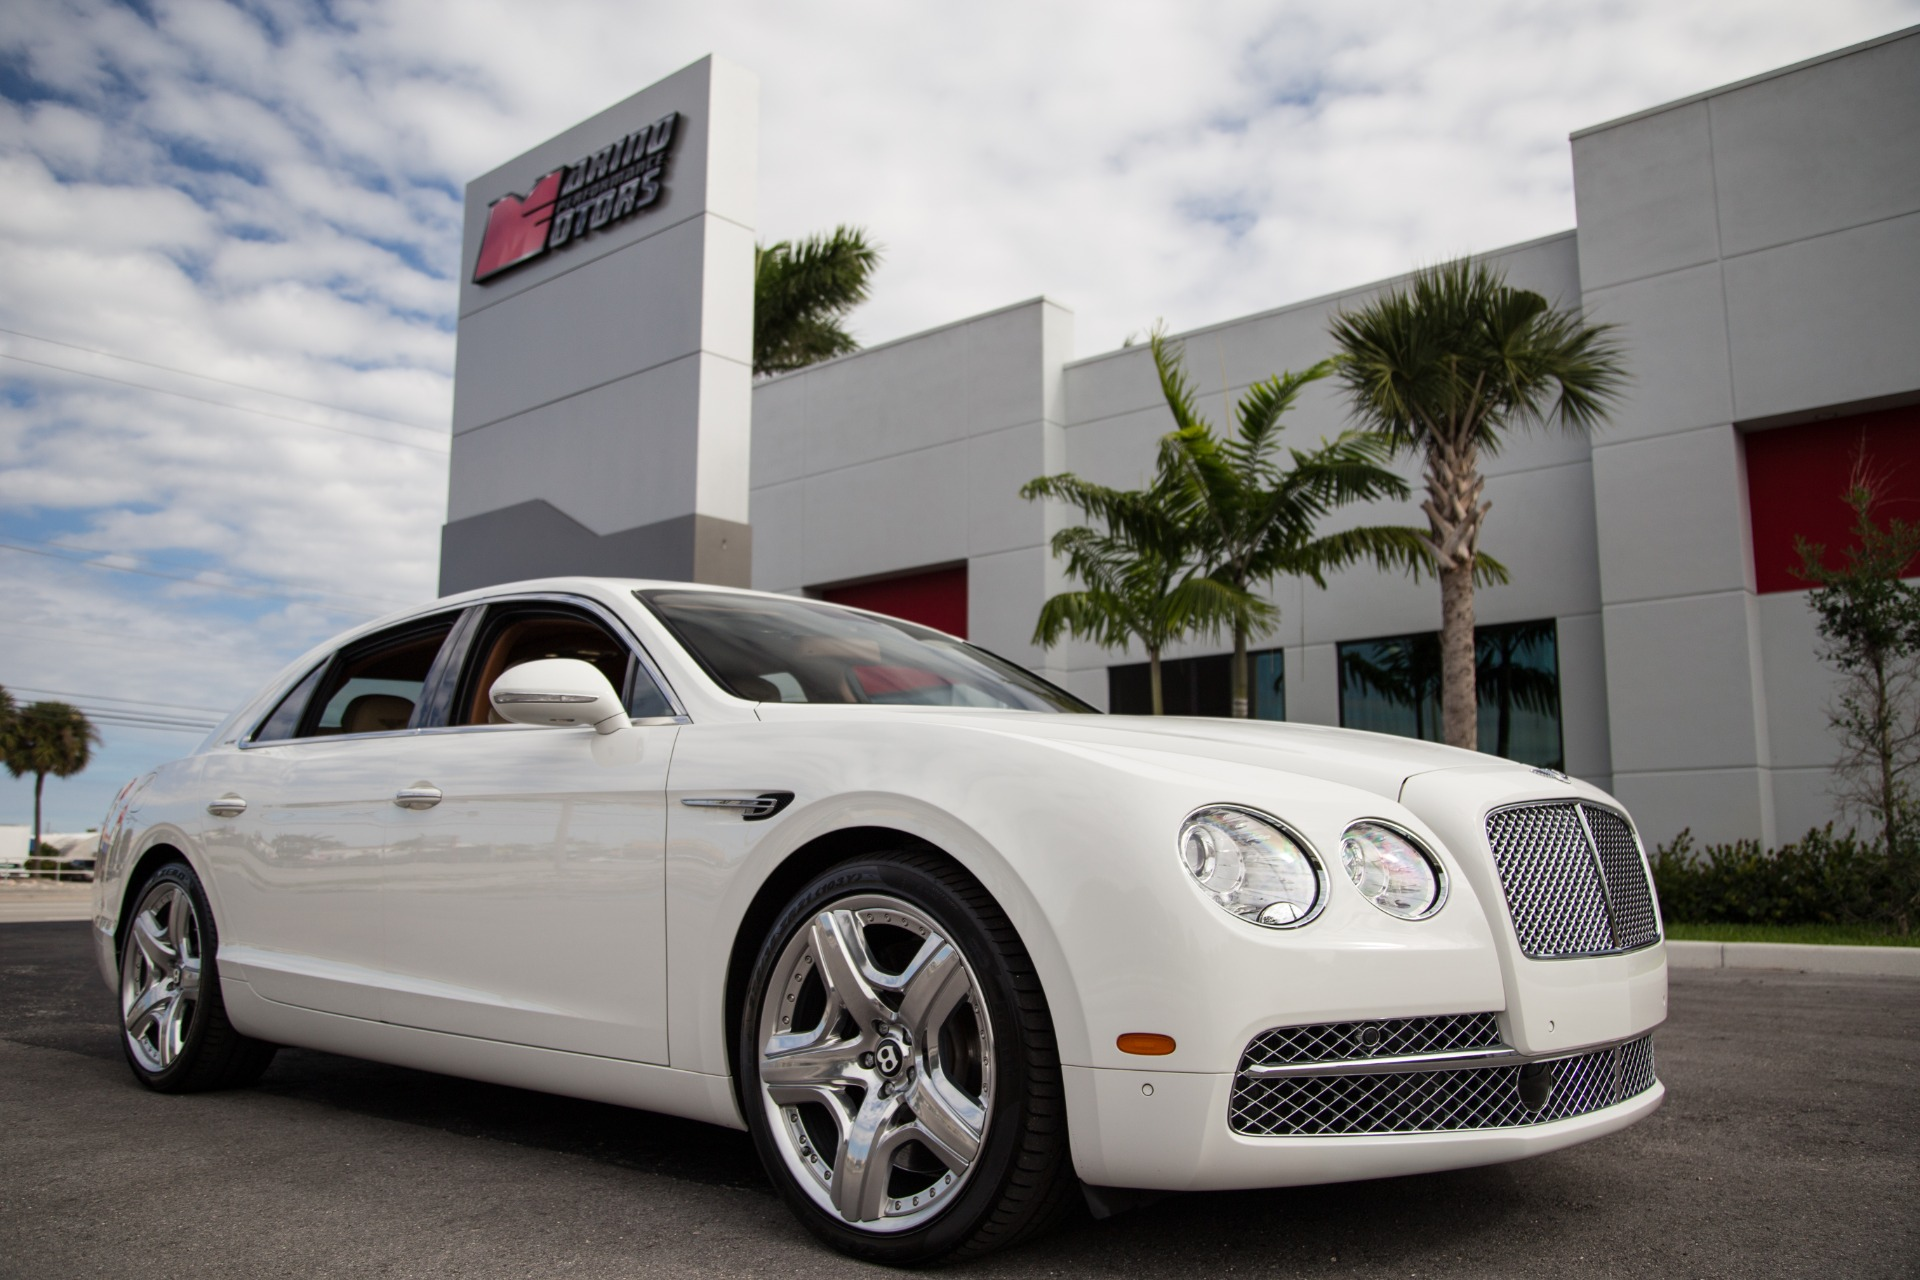 used 2014 bentley flying spur for sale ($99,900) | marino